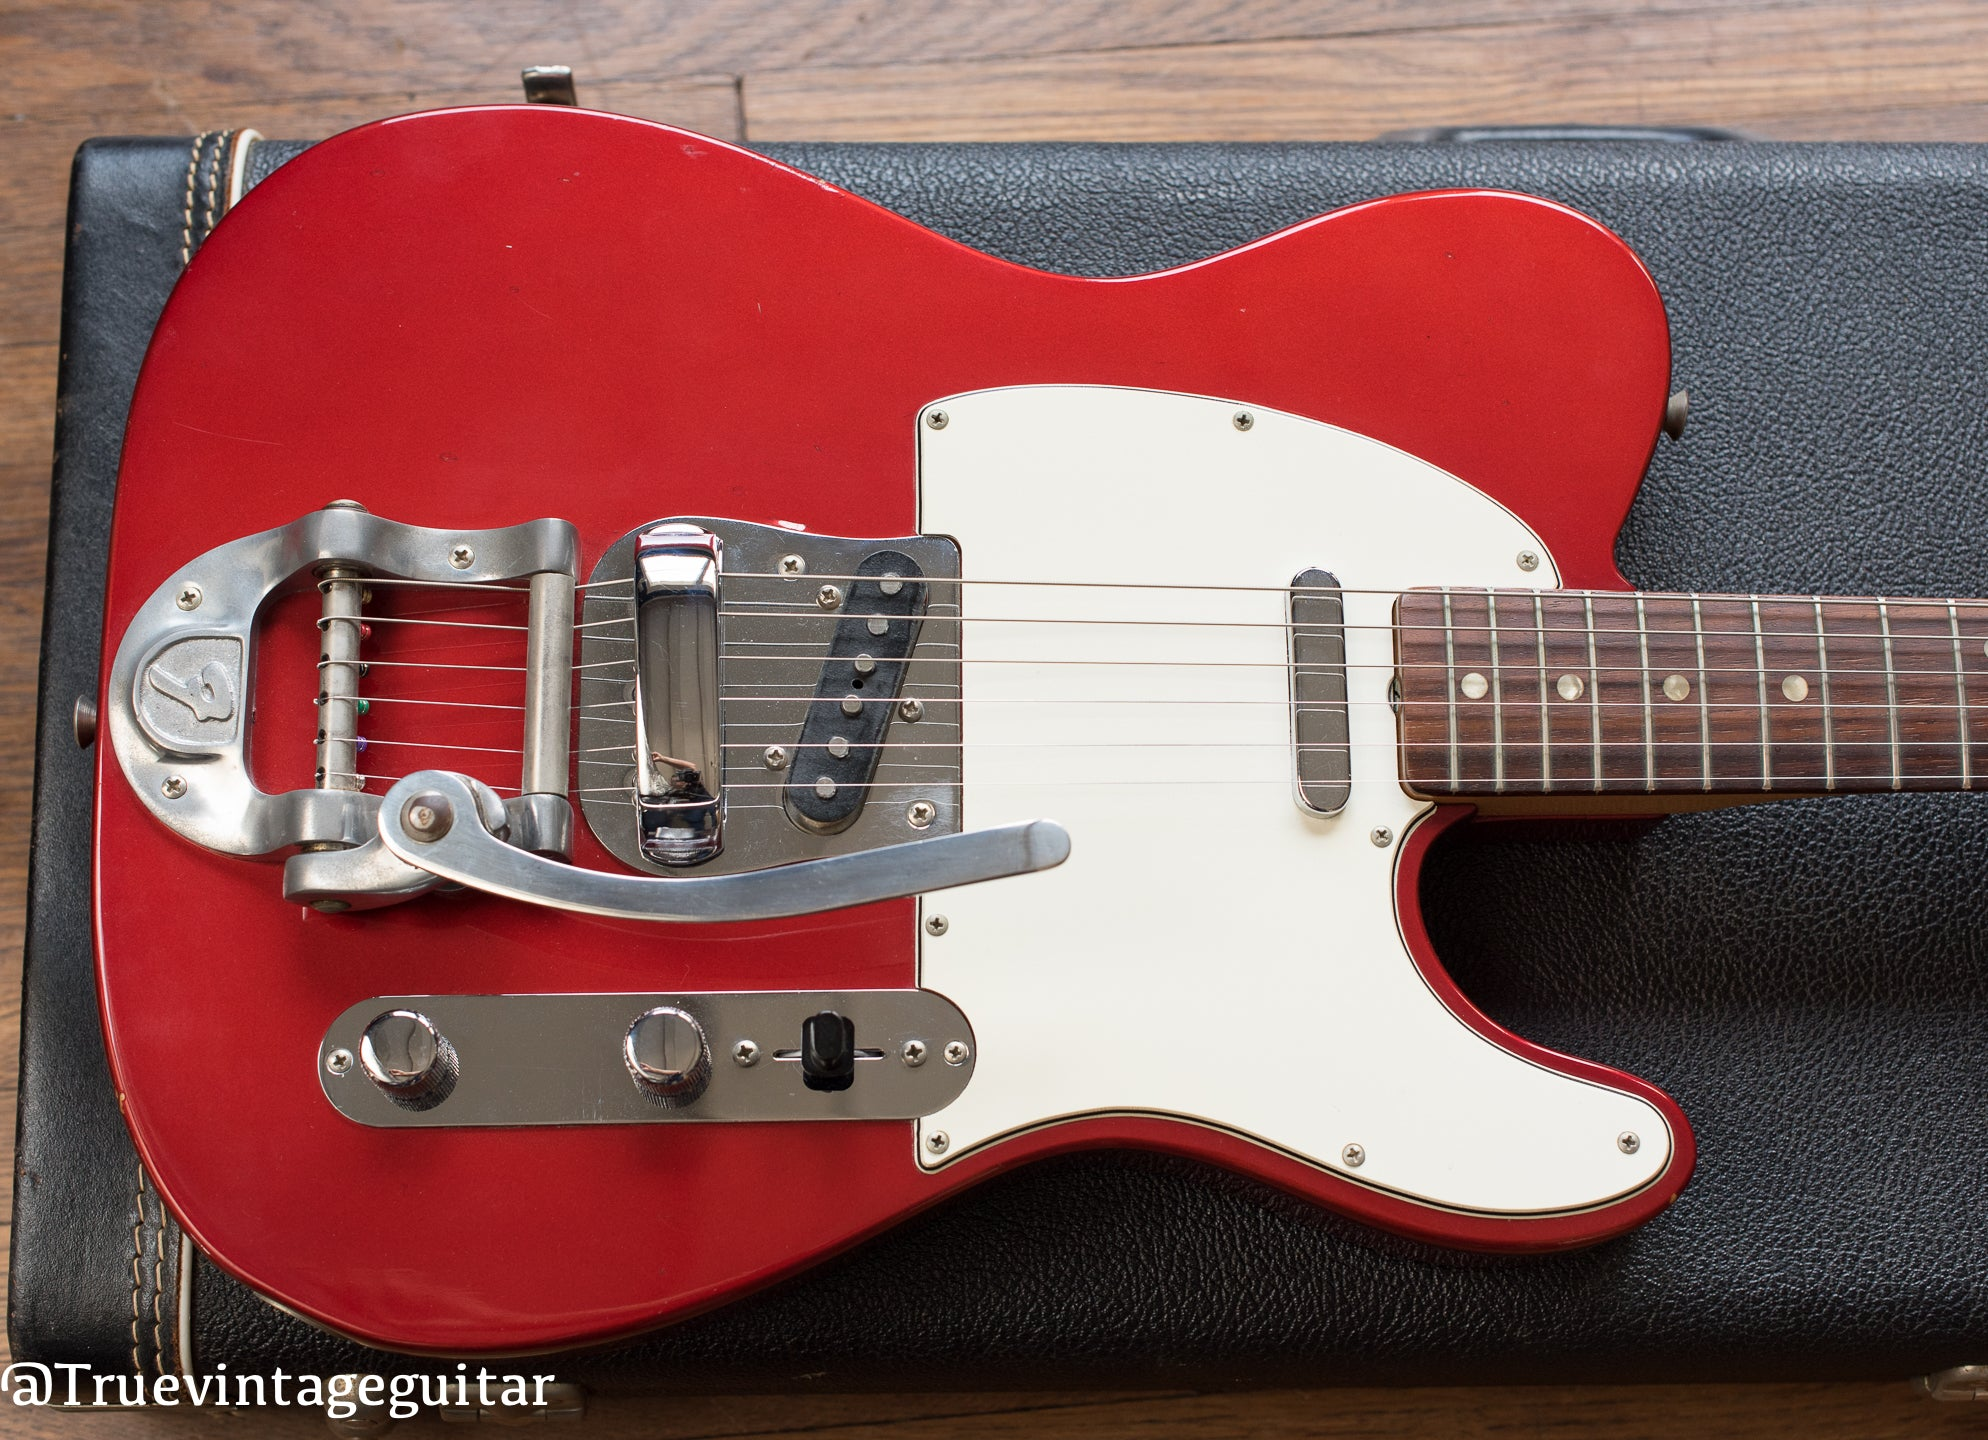 Vintage 1968 Fender Telecaster Candy Apple Red Metallic Bigsby electric guitar